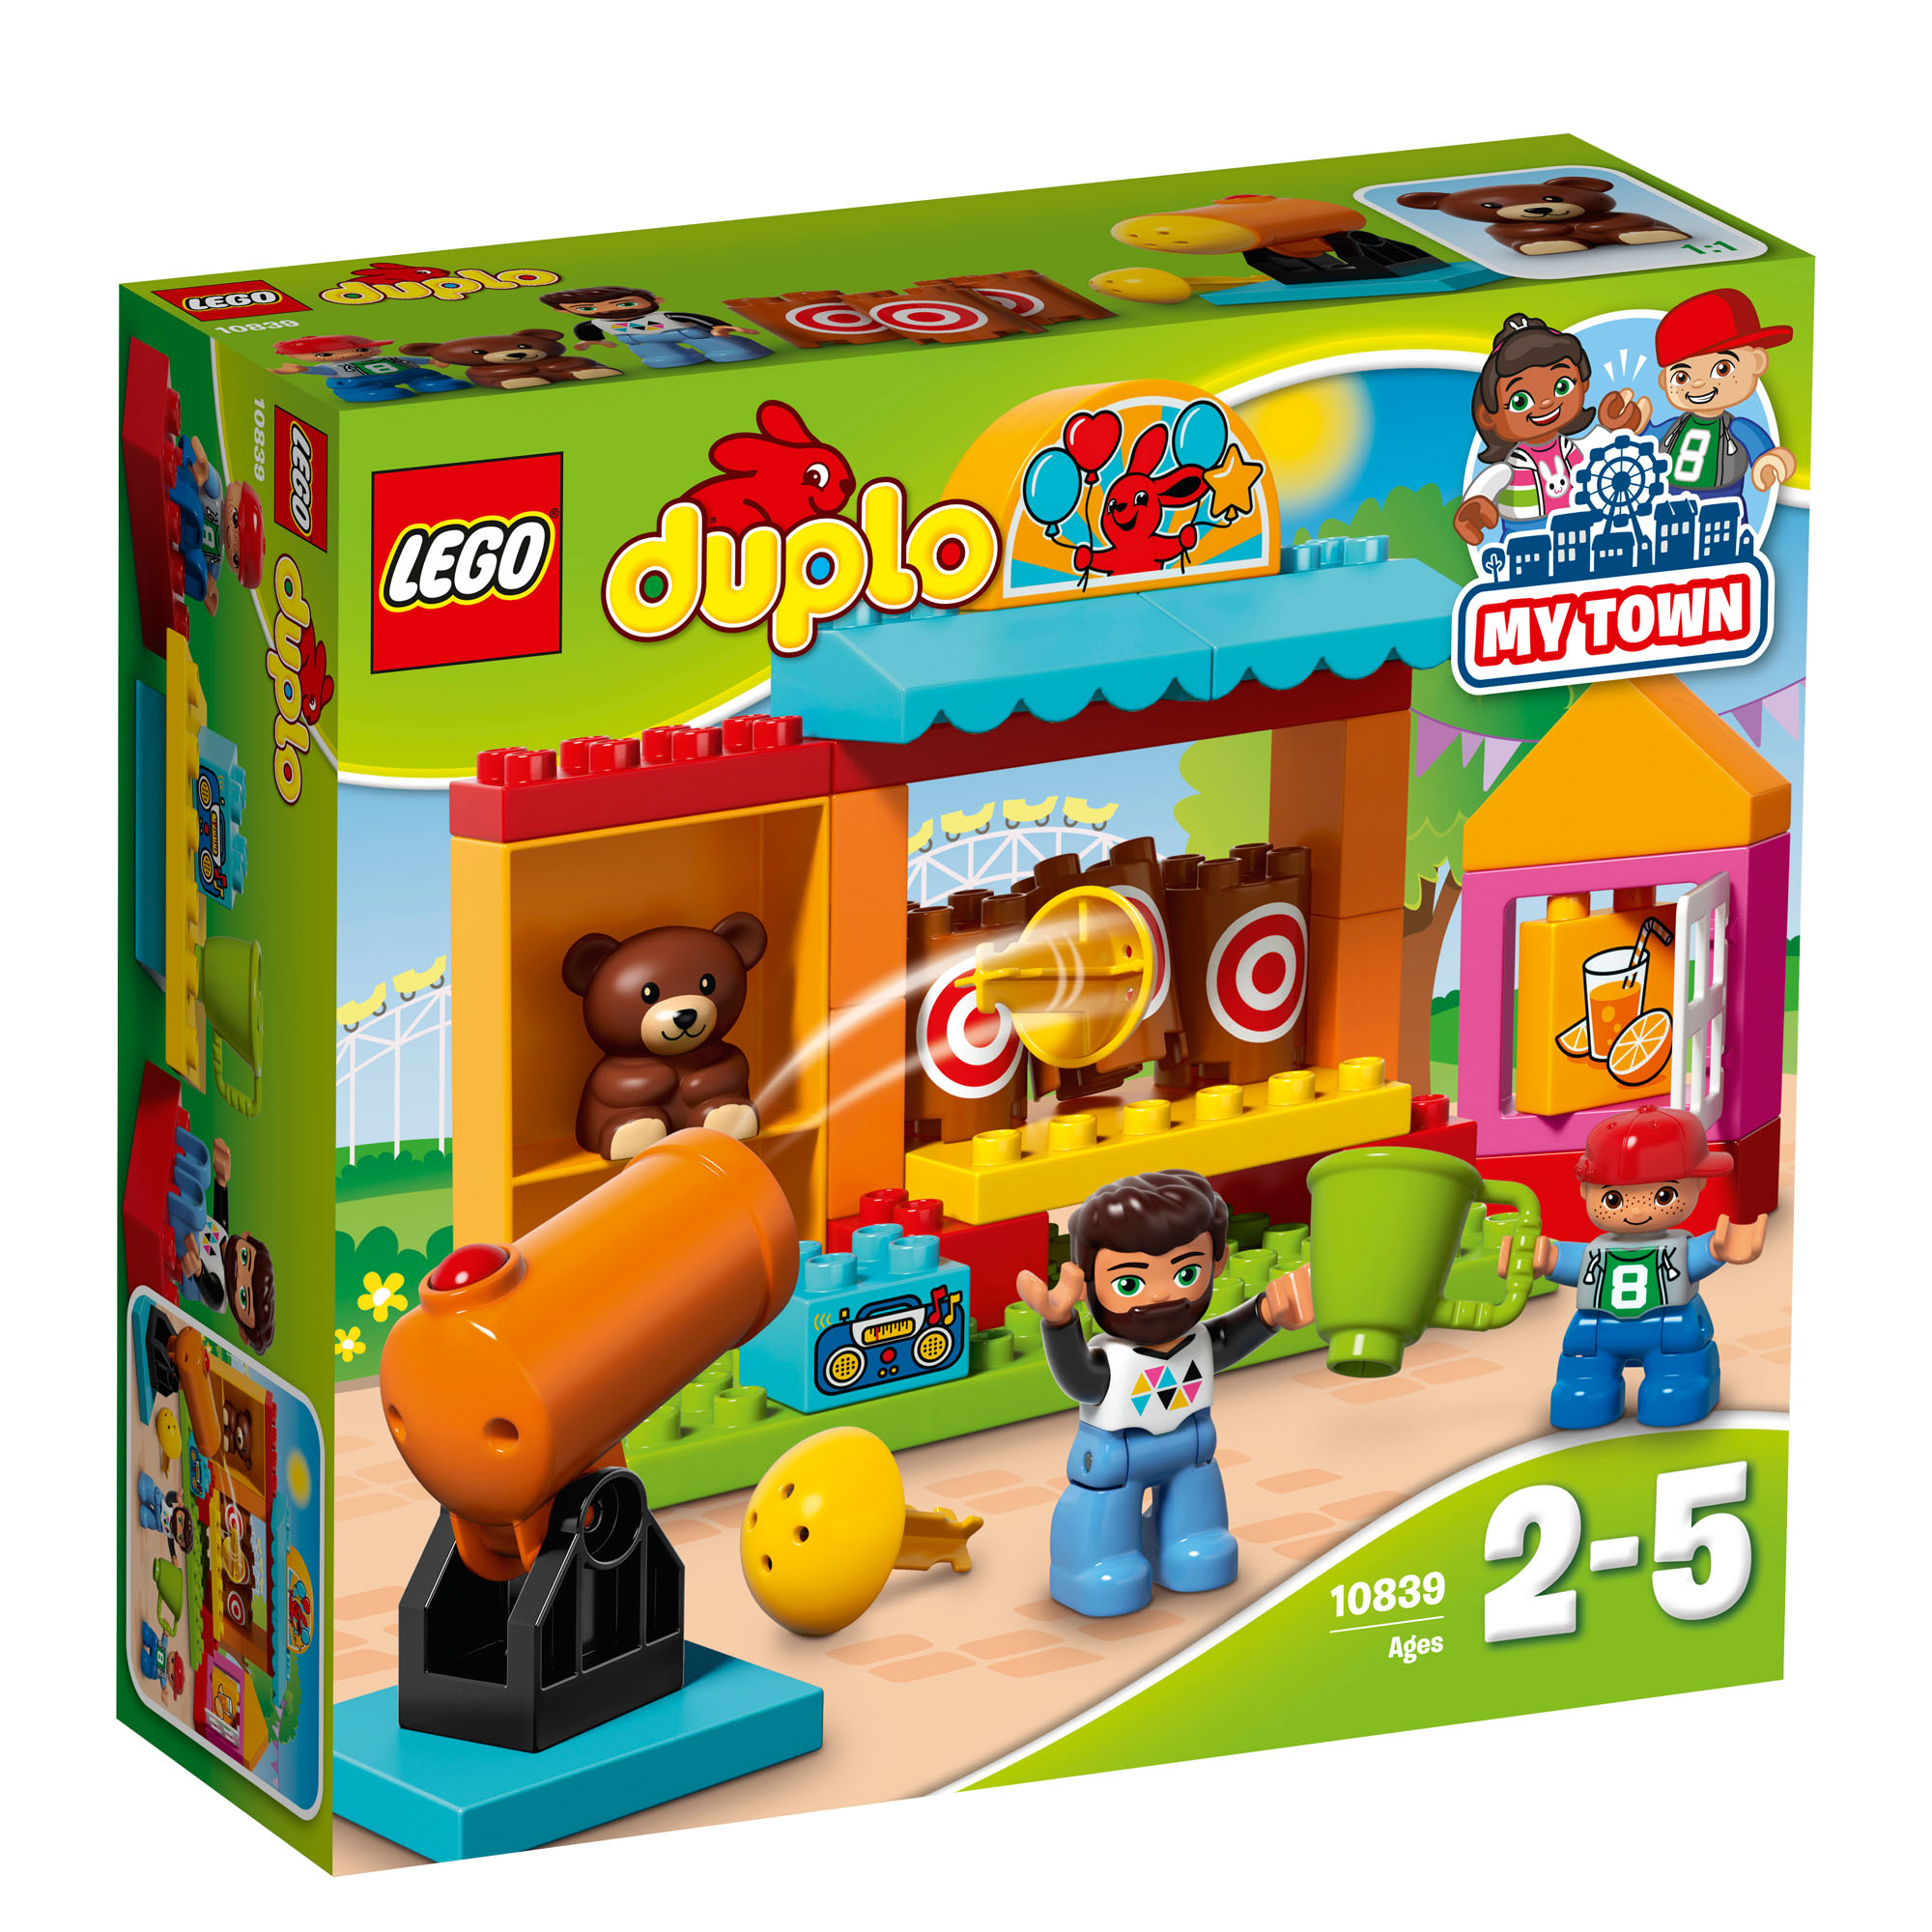 10839 lego duplo shooting gallery set 32 pieces age 2 5. Black Bedroom Furniture Sets. Home Design Ideas